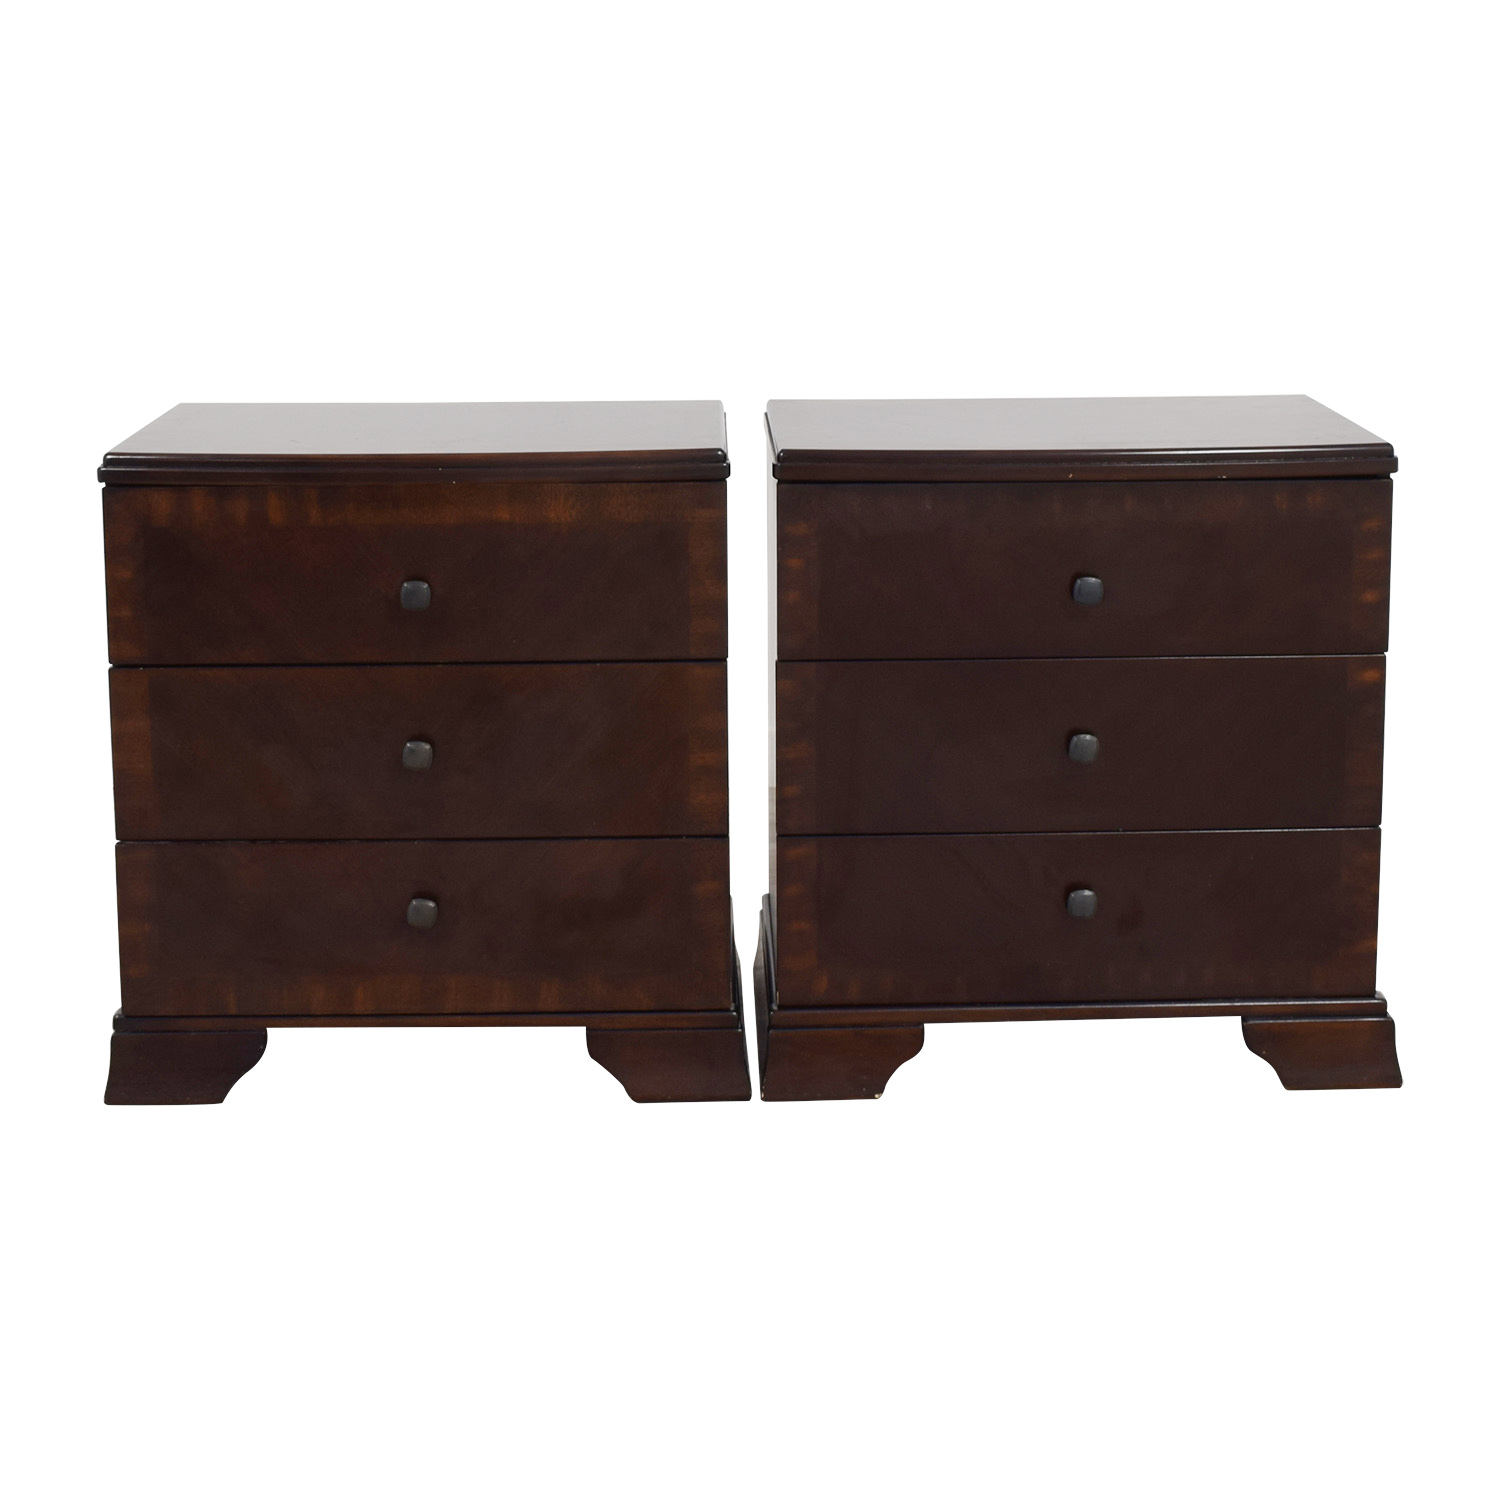 Wayfair Wayfair Cherry Stained Nightstands dimensions